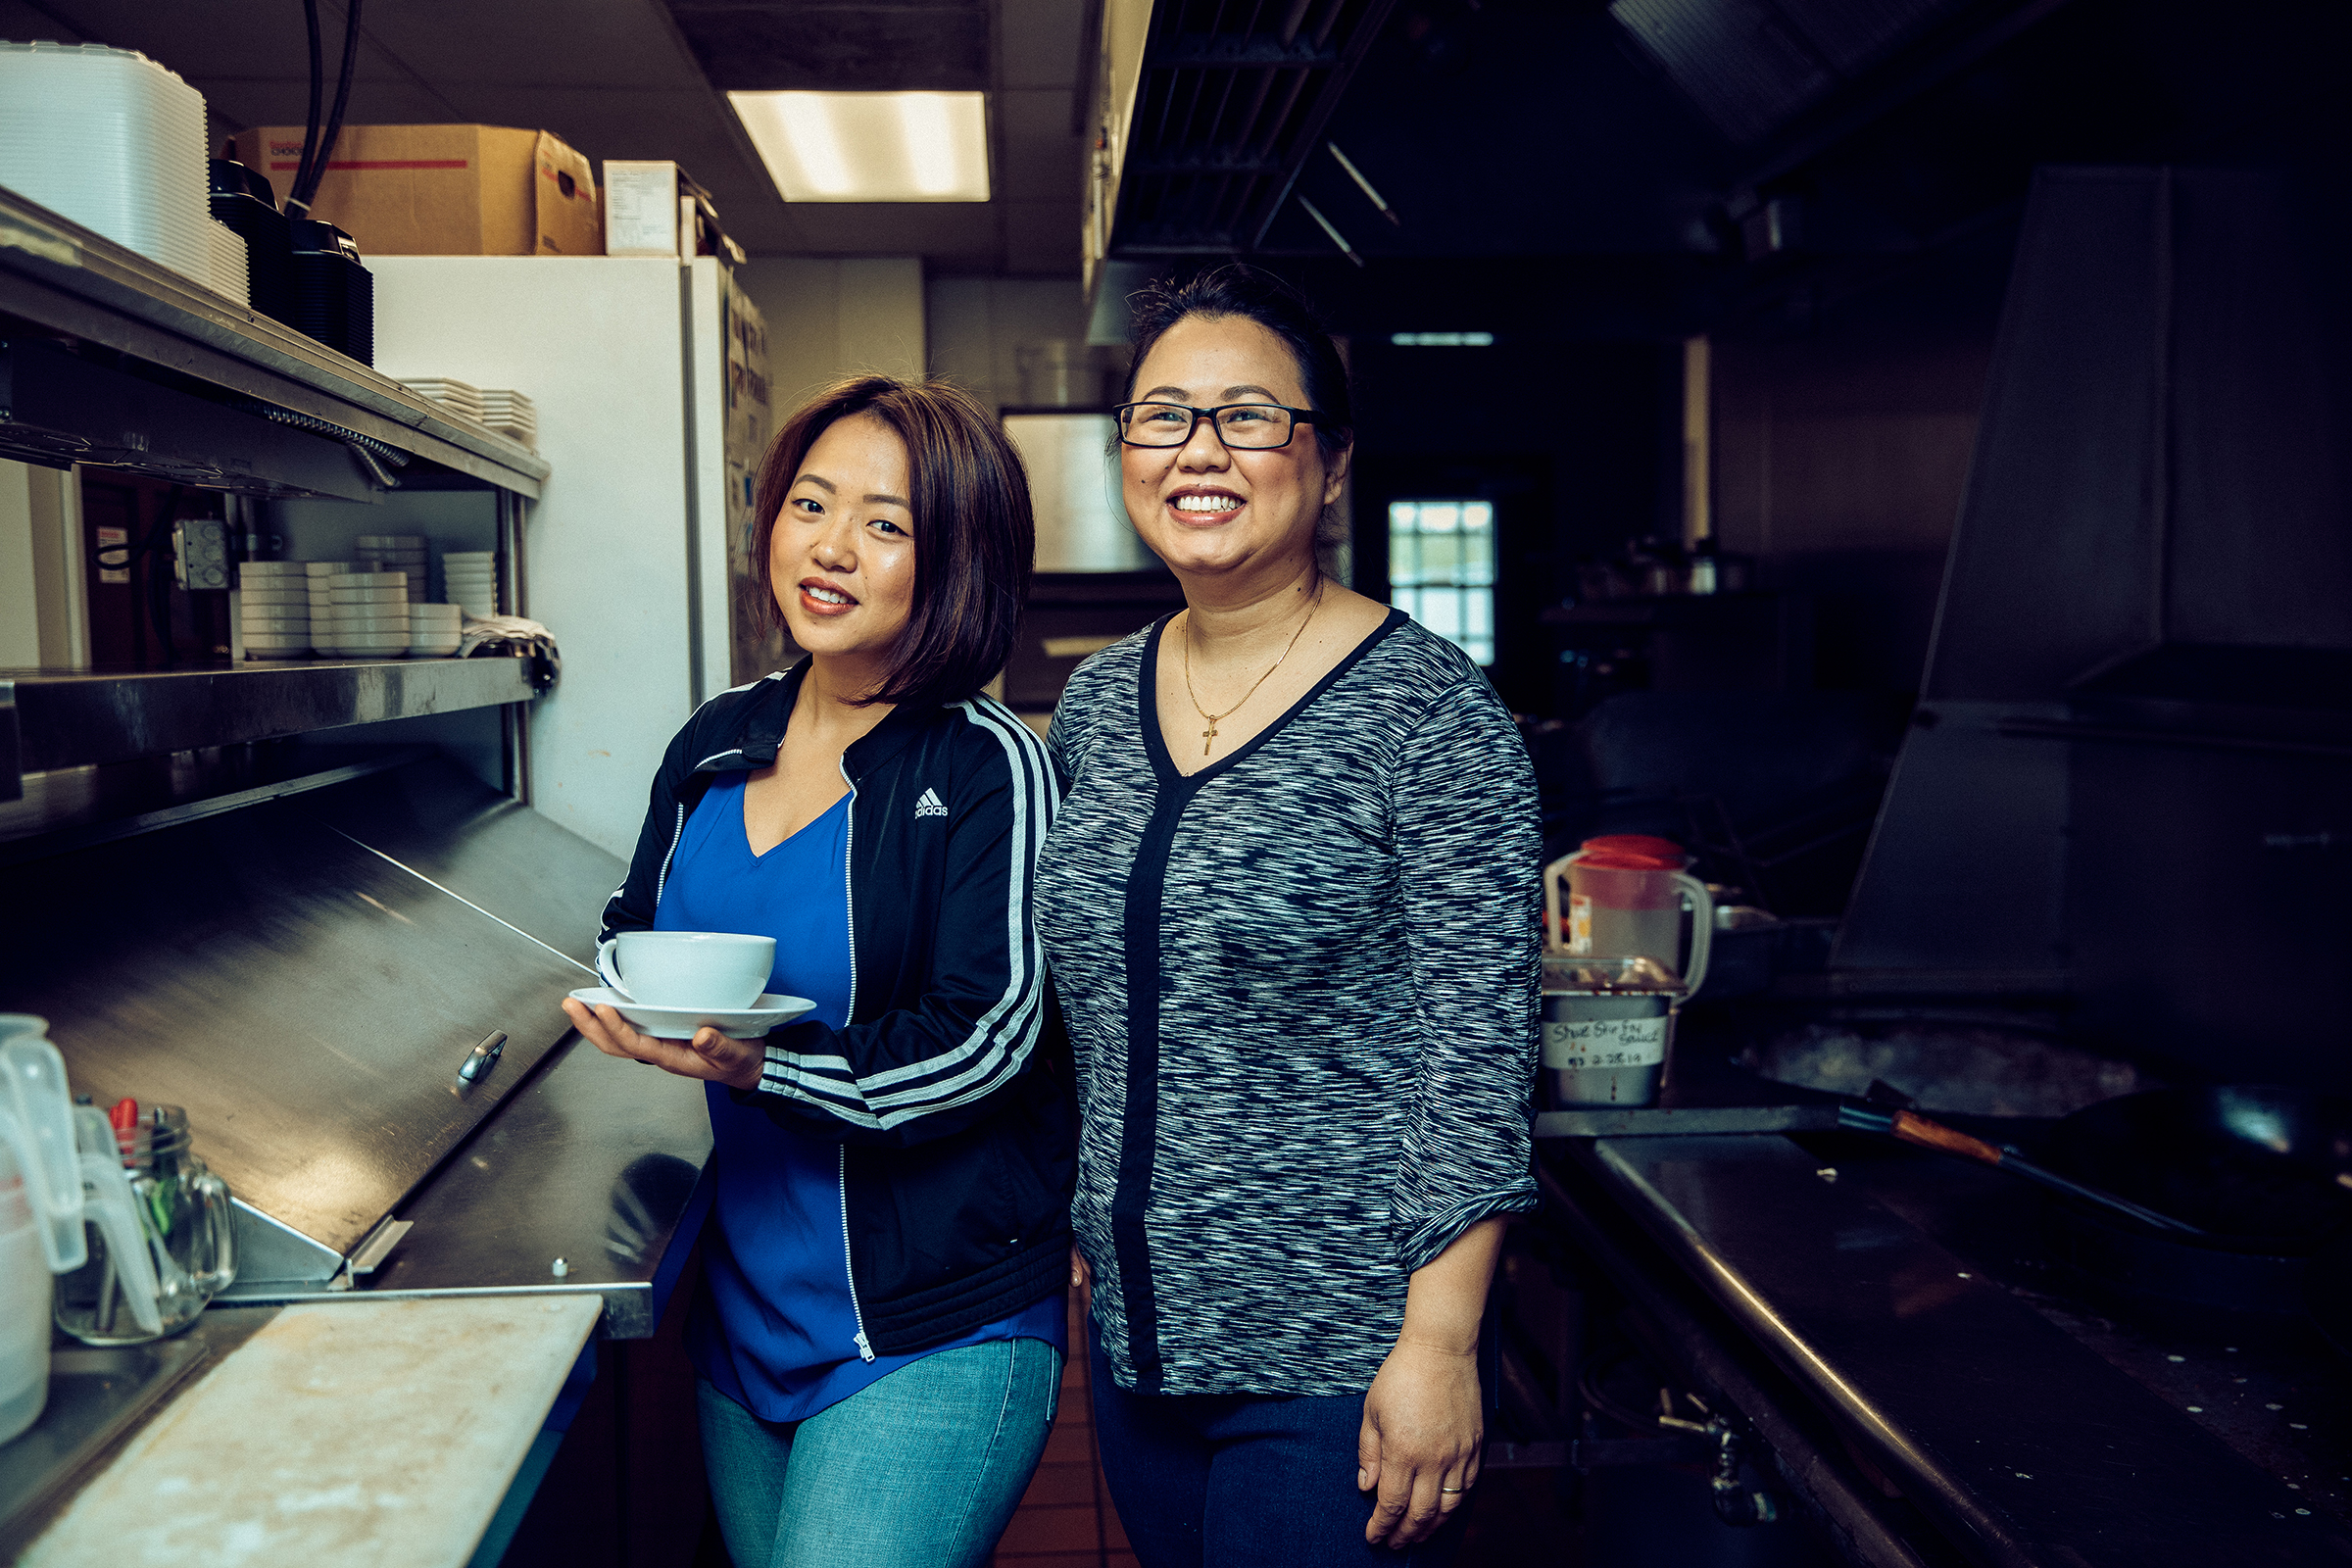 Amanda Sunthang and her mom, owners of Shwe Mandalay Burmese Cuisine restaurant located in Battle Creek, Michigan, standing in the kitchen.